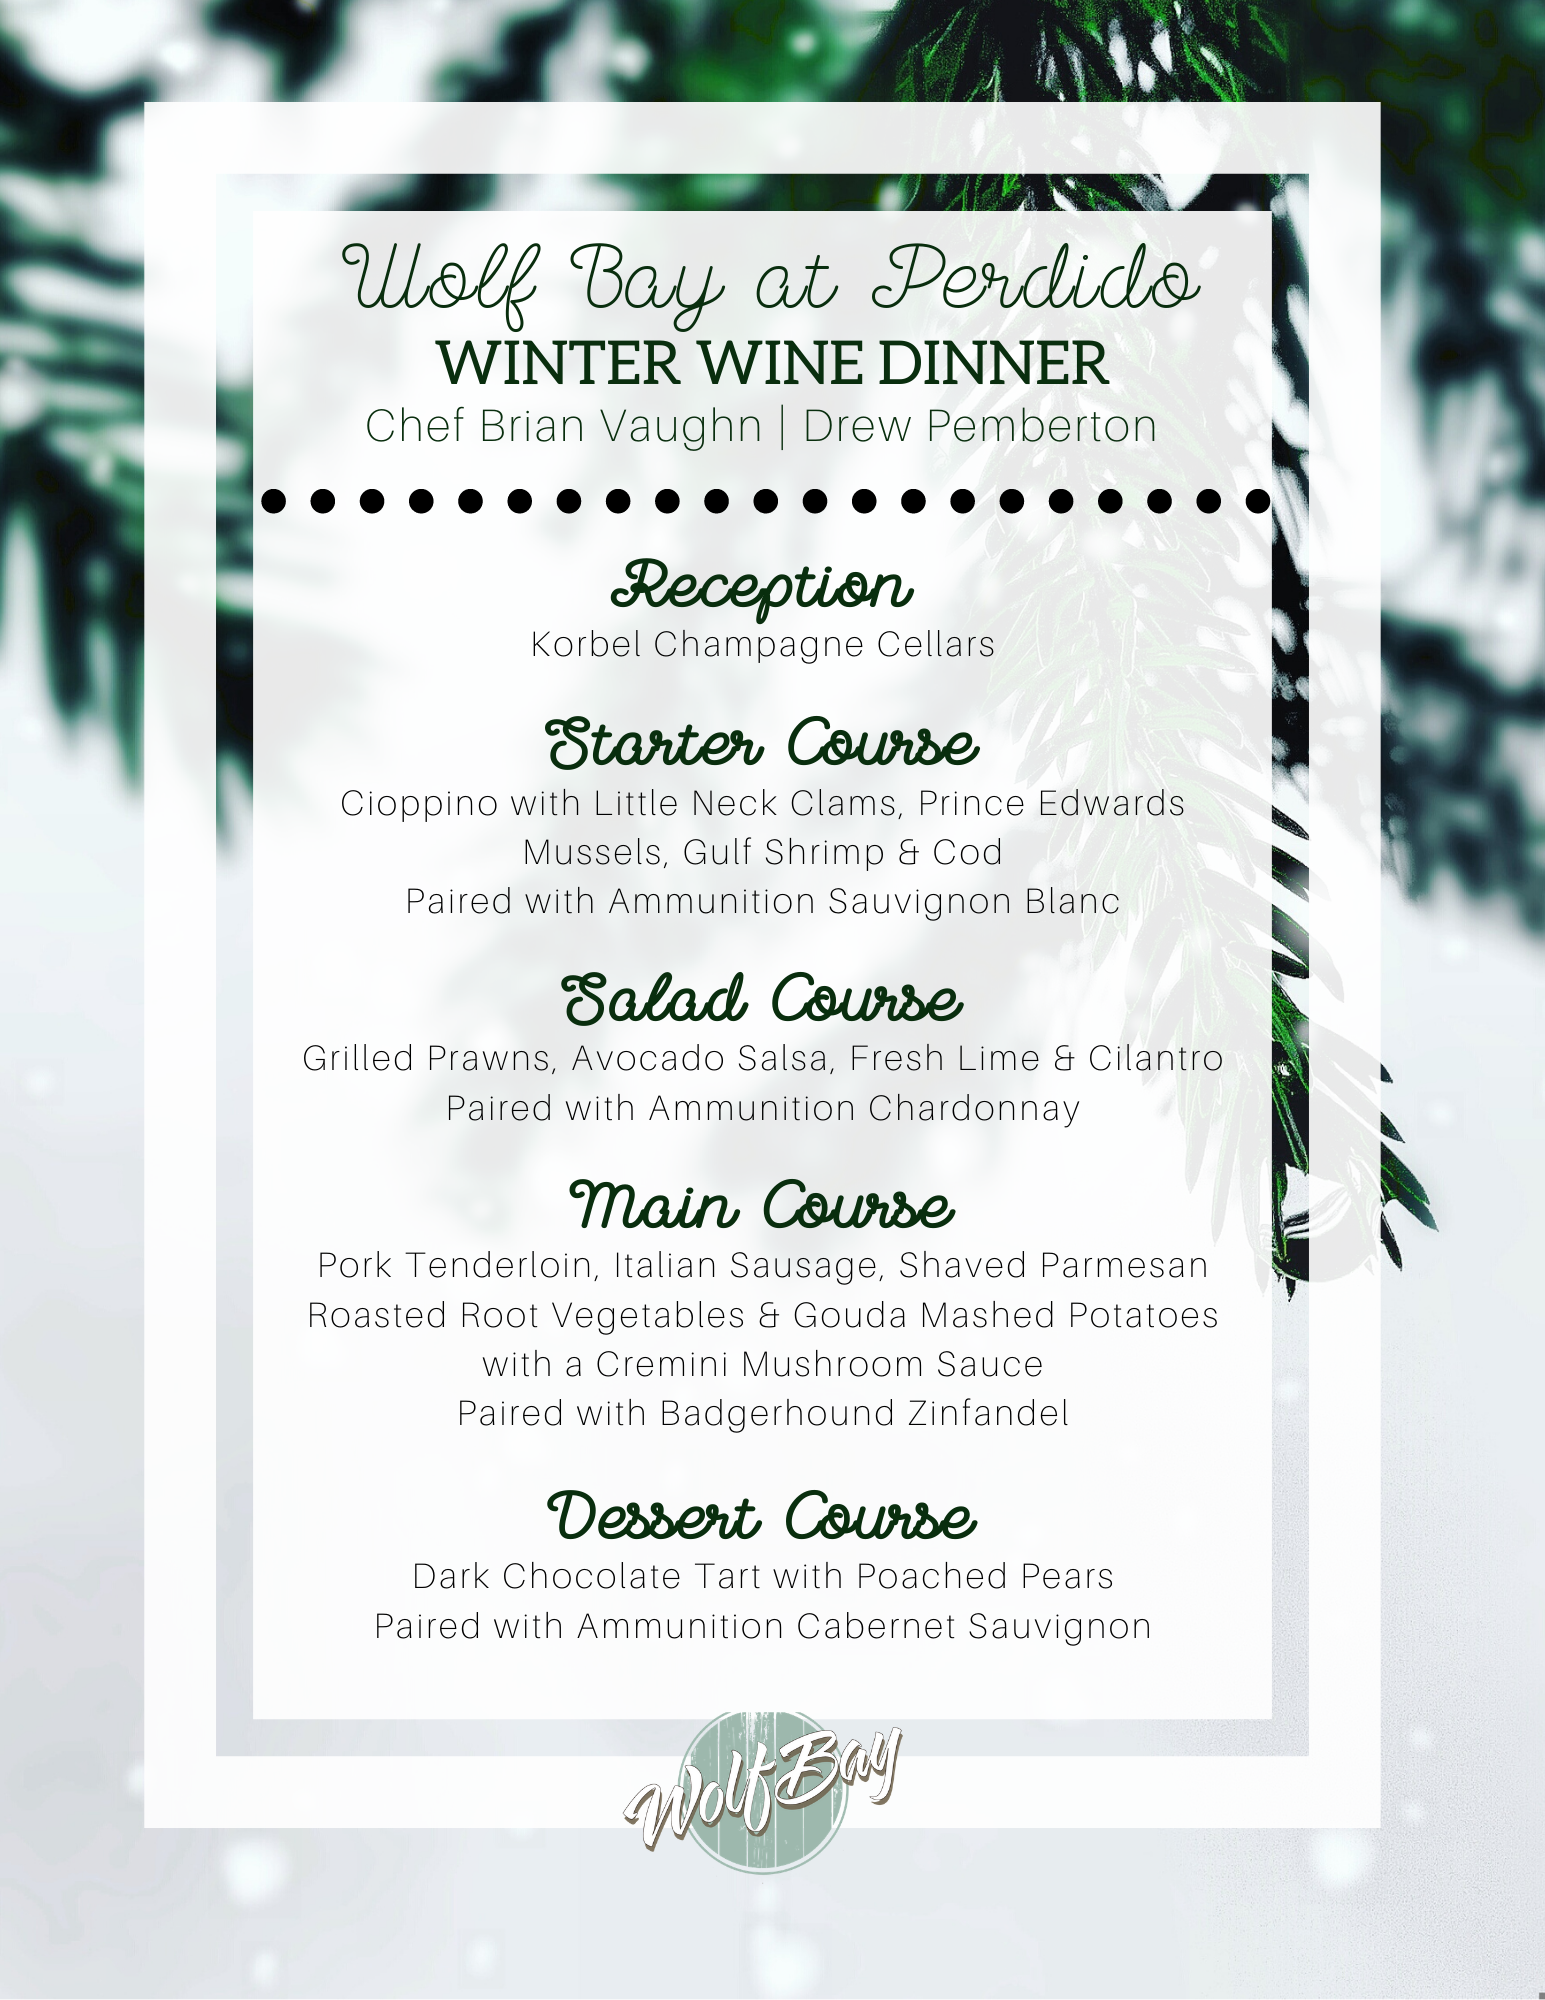 Wolf Bay Perdido Winter Wine Menu